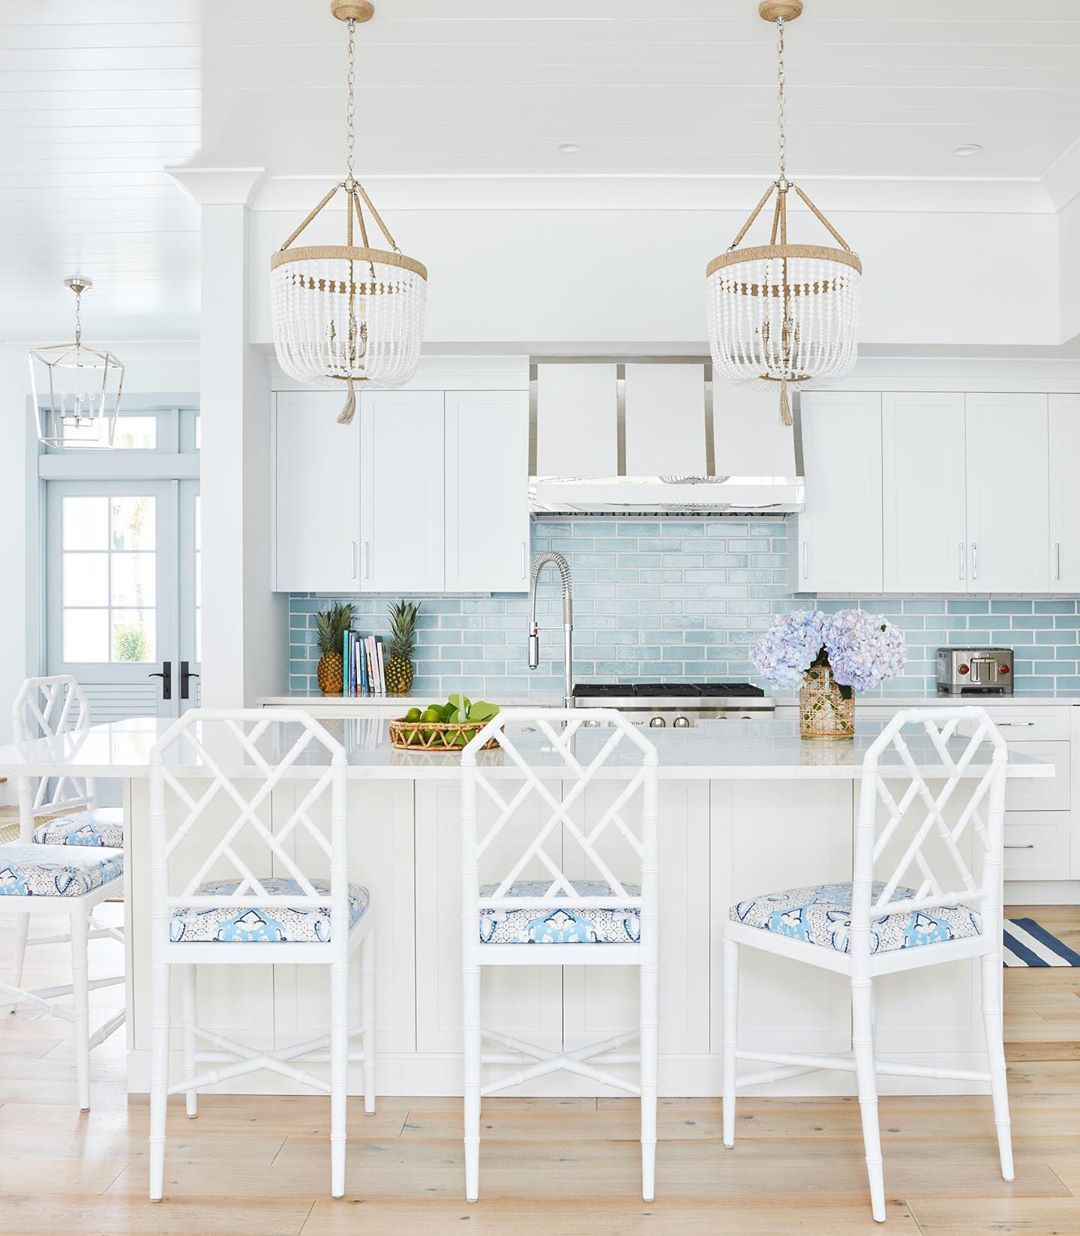 - 17 Coastal Kitchens & Decor Ideas For A Beach Or Summer Home